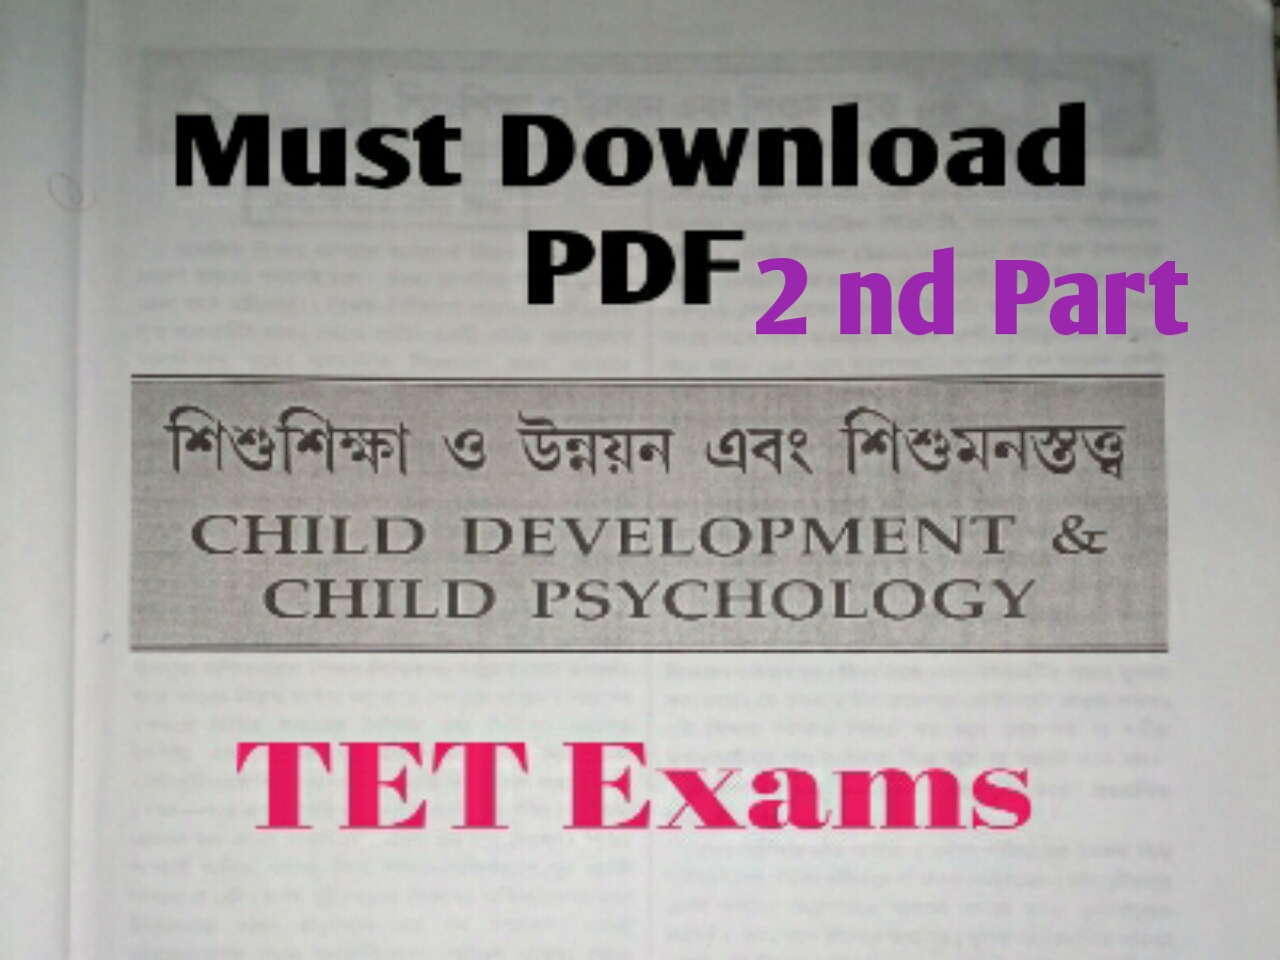 Download Child Development and Child Psychology PDF Book Part 2 - GK